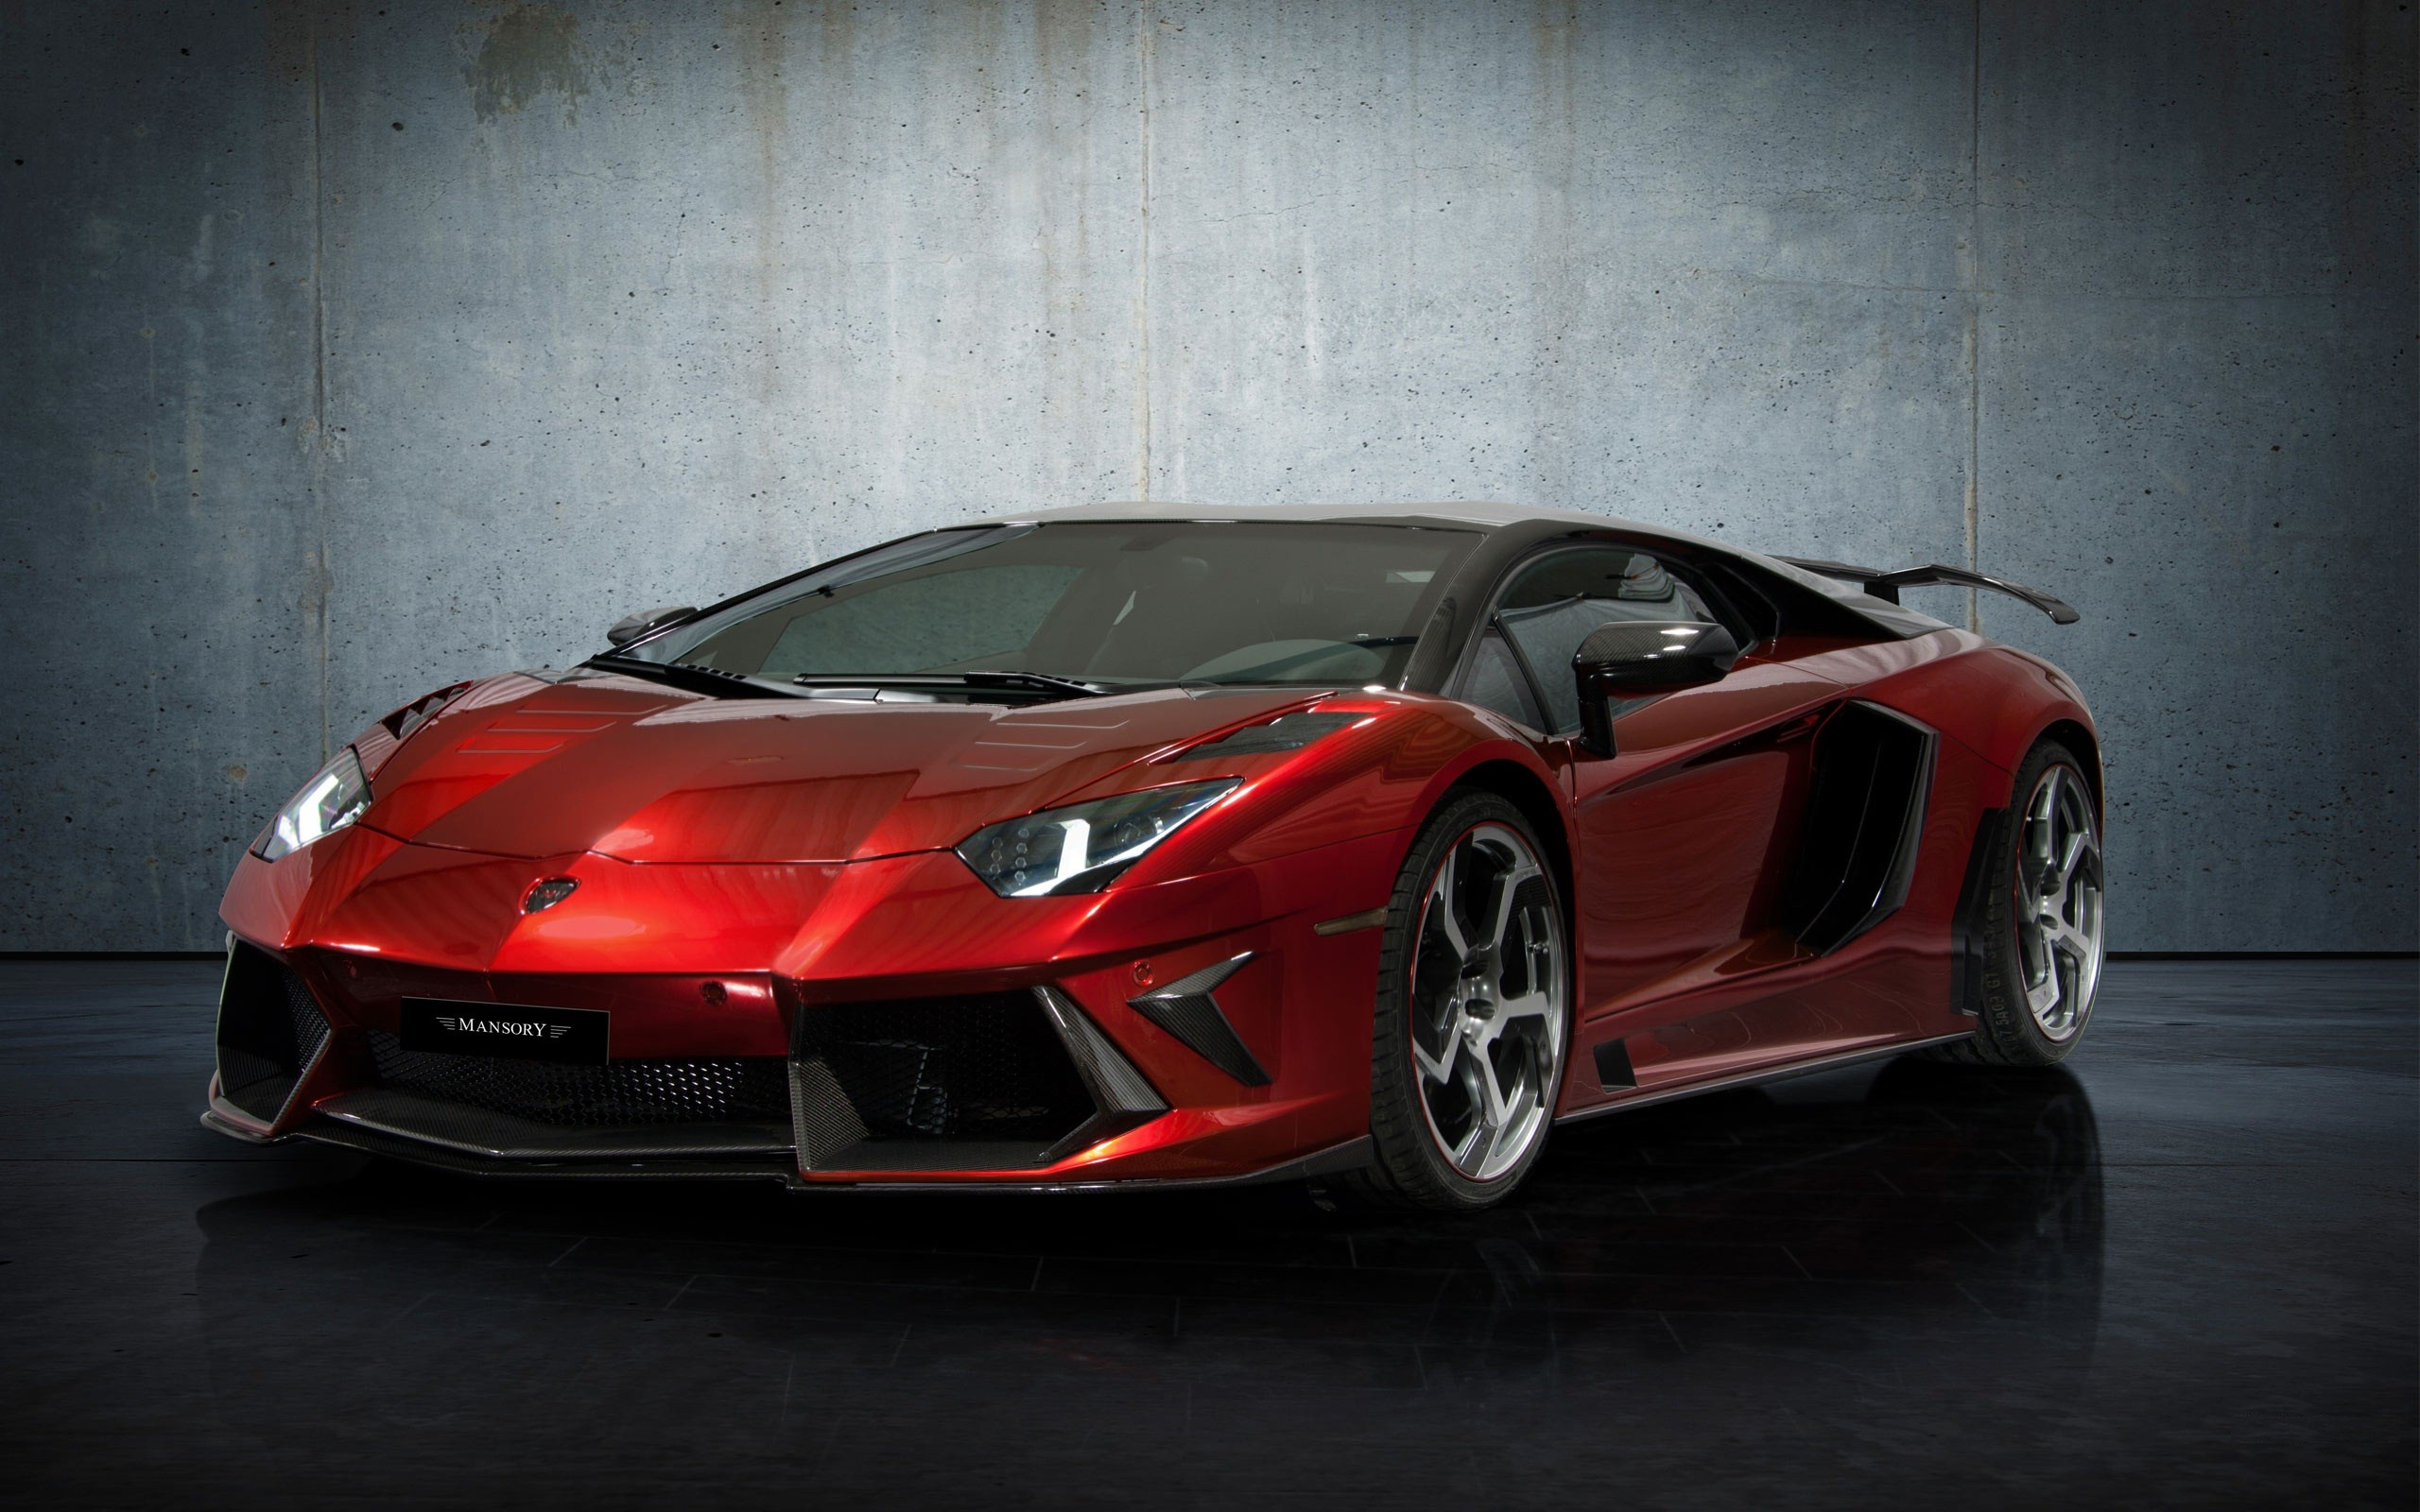 Red Lamborghini Gallardo Wallpaper HD Wallpaper Area HD Wallpapers 2560x1600